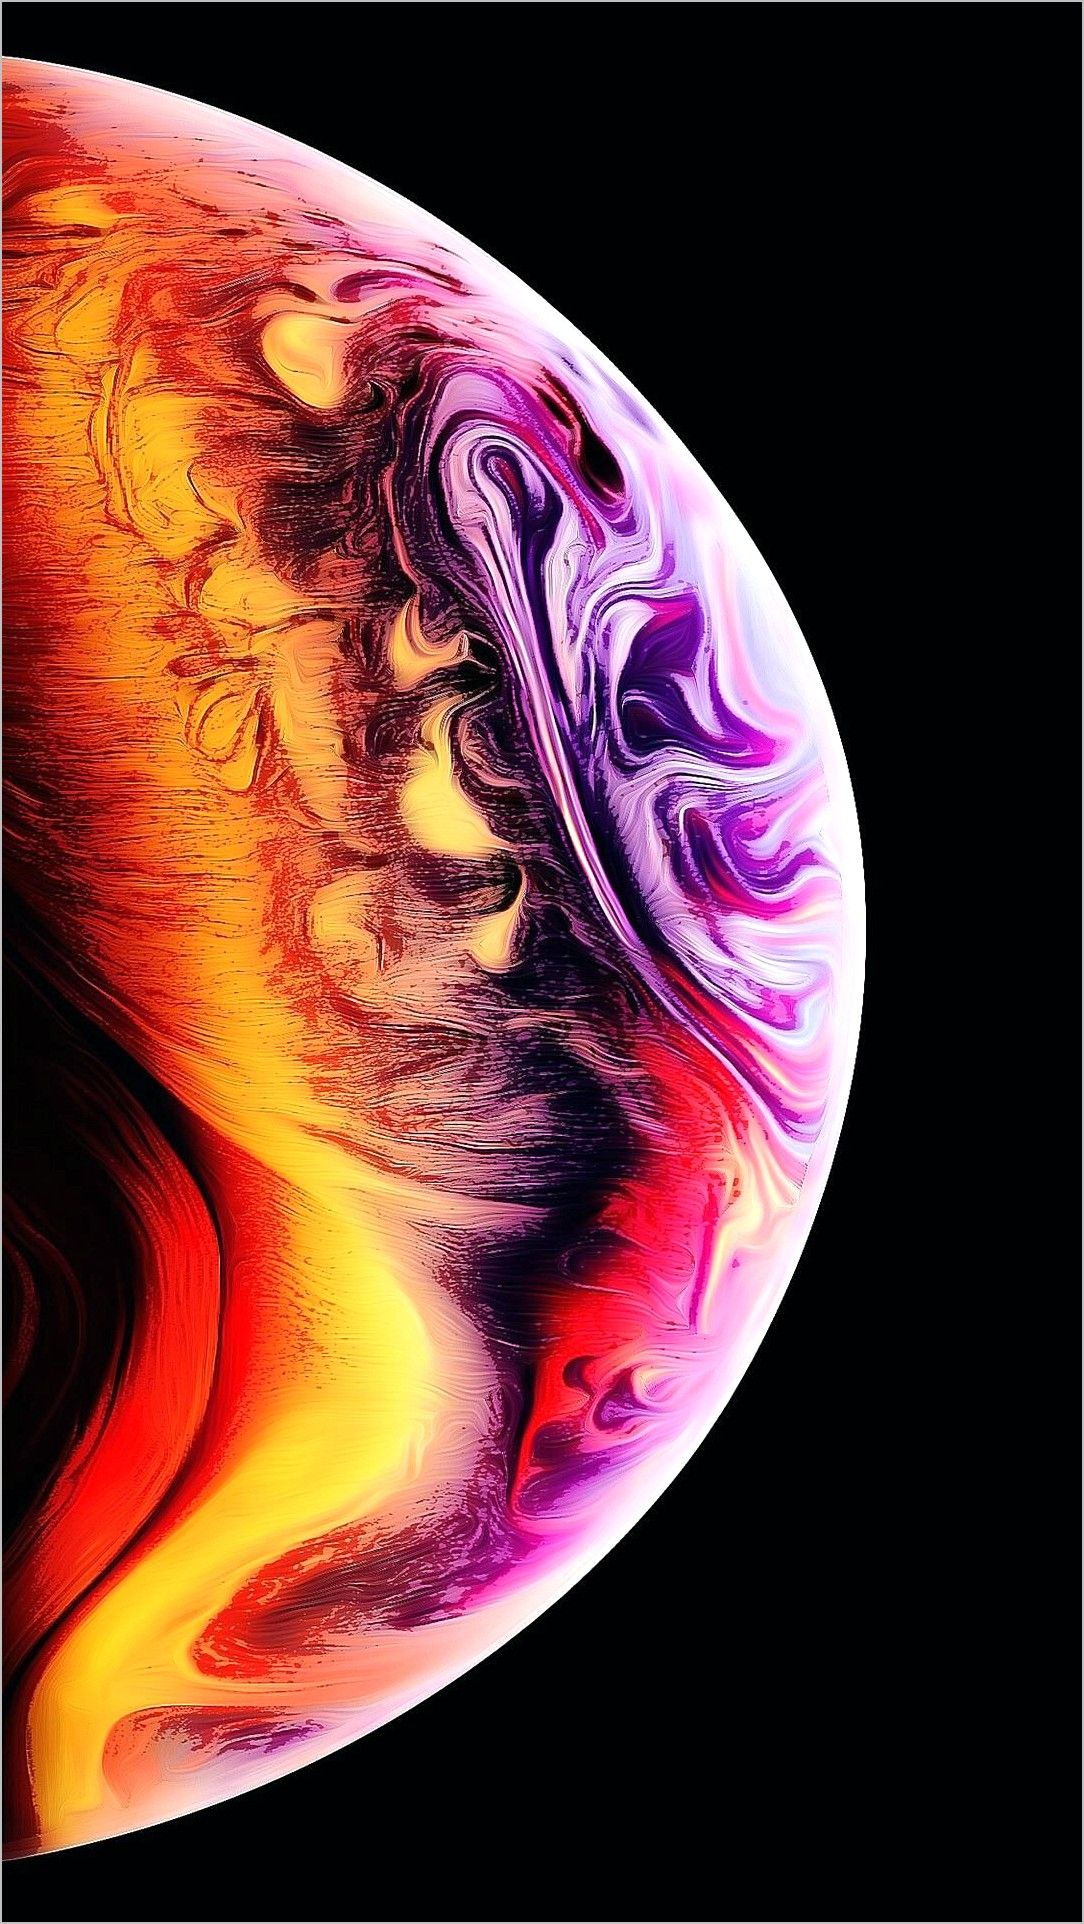 Apple Wallpaper 4k Ink (2020) Apple wallpaper, Wallpaper